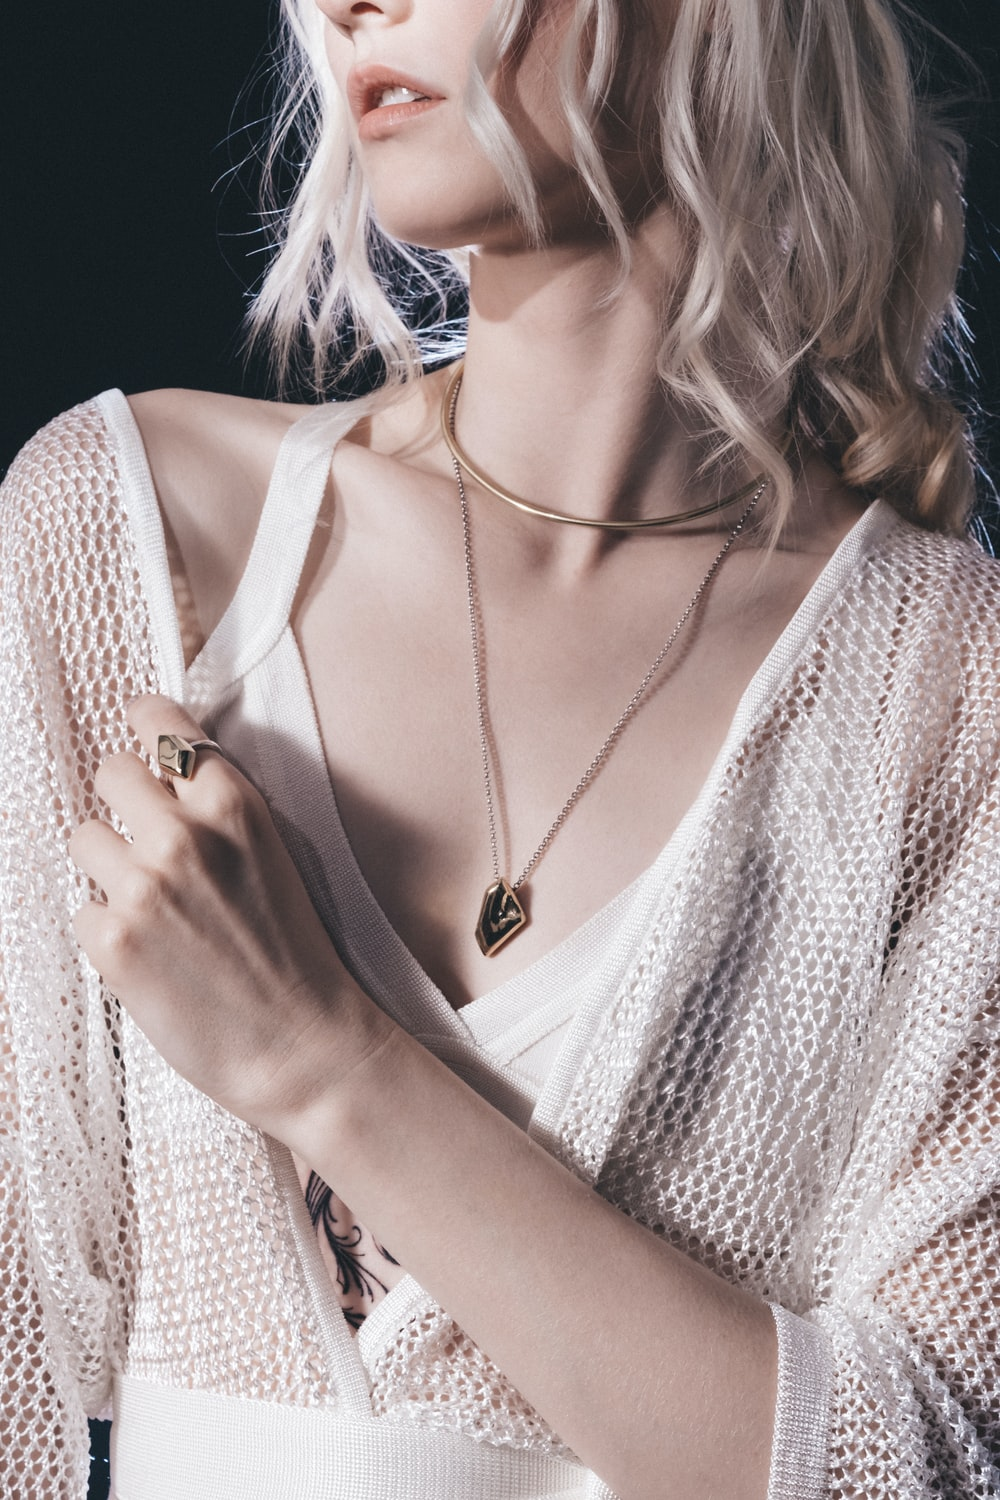 Why A Silver Necklace Is A Good Choice For A Fashion Statement?